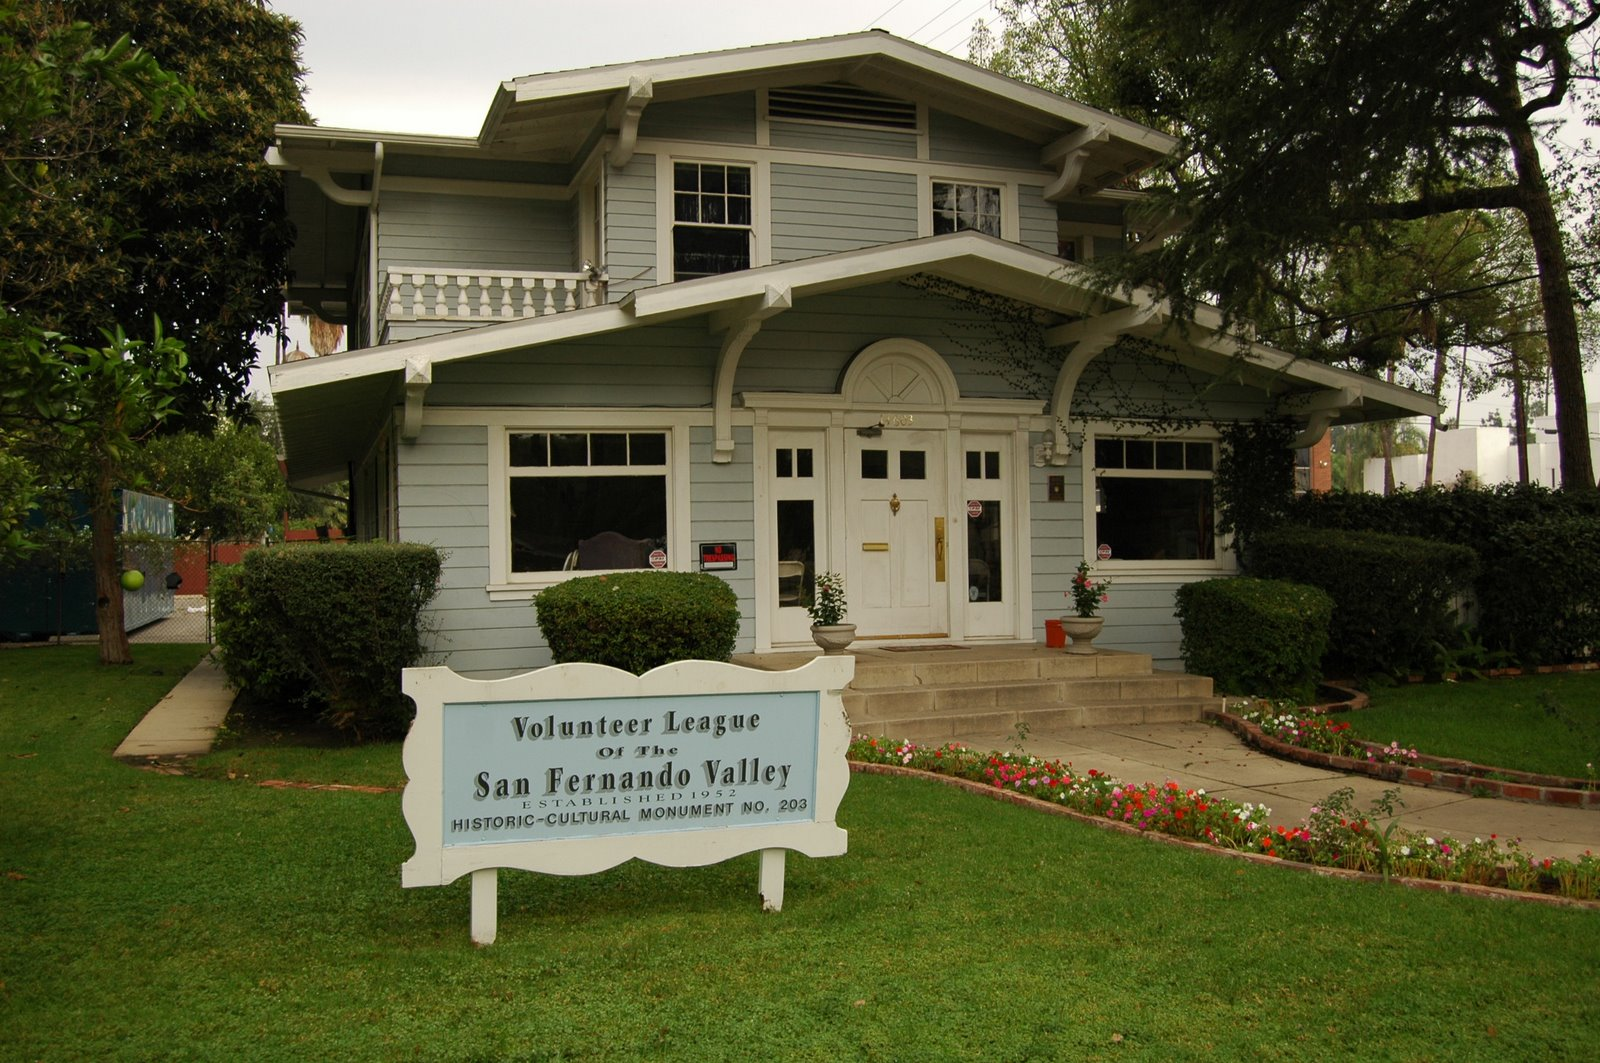 Daily News: History Buff Plans Van Nuys Walking Tour – Here